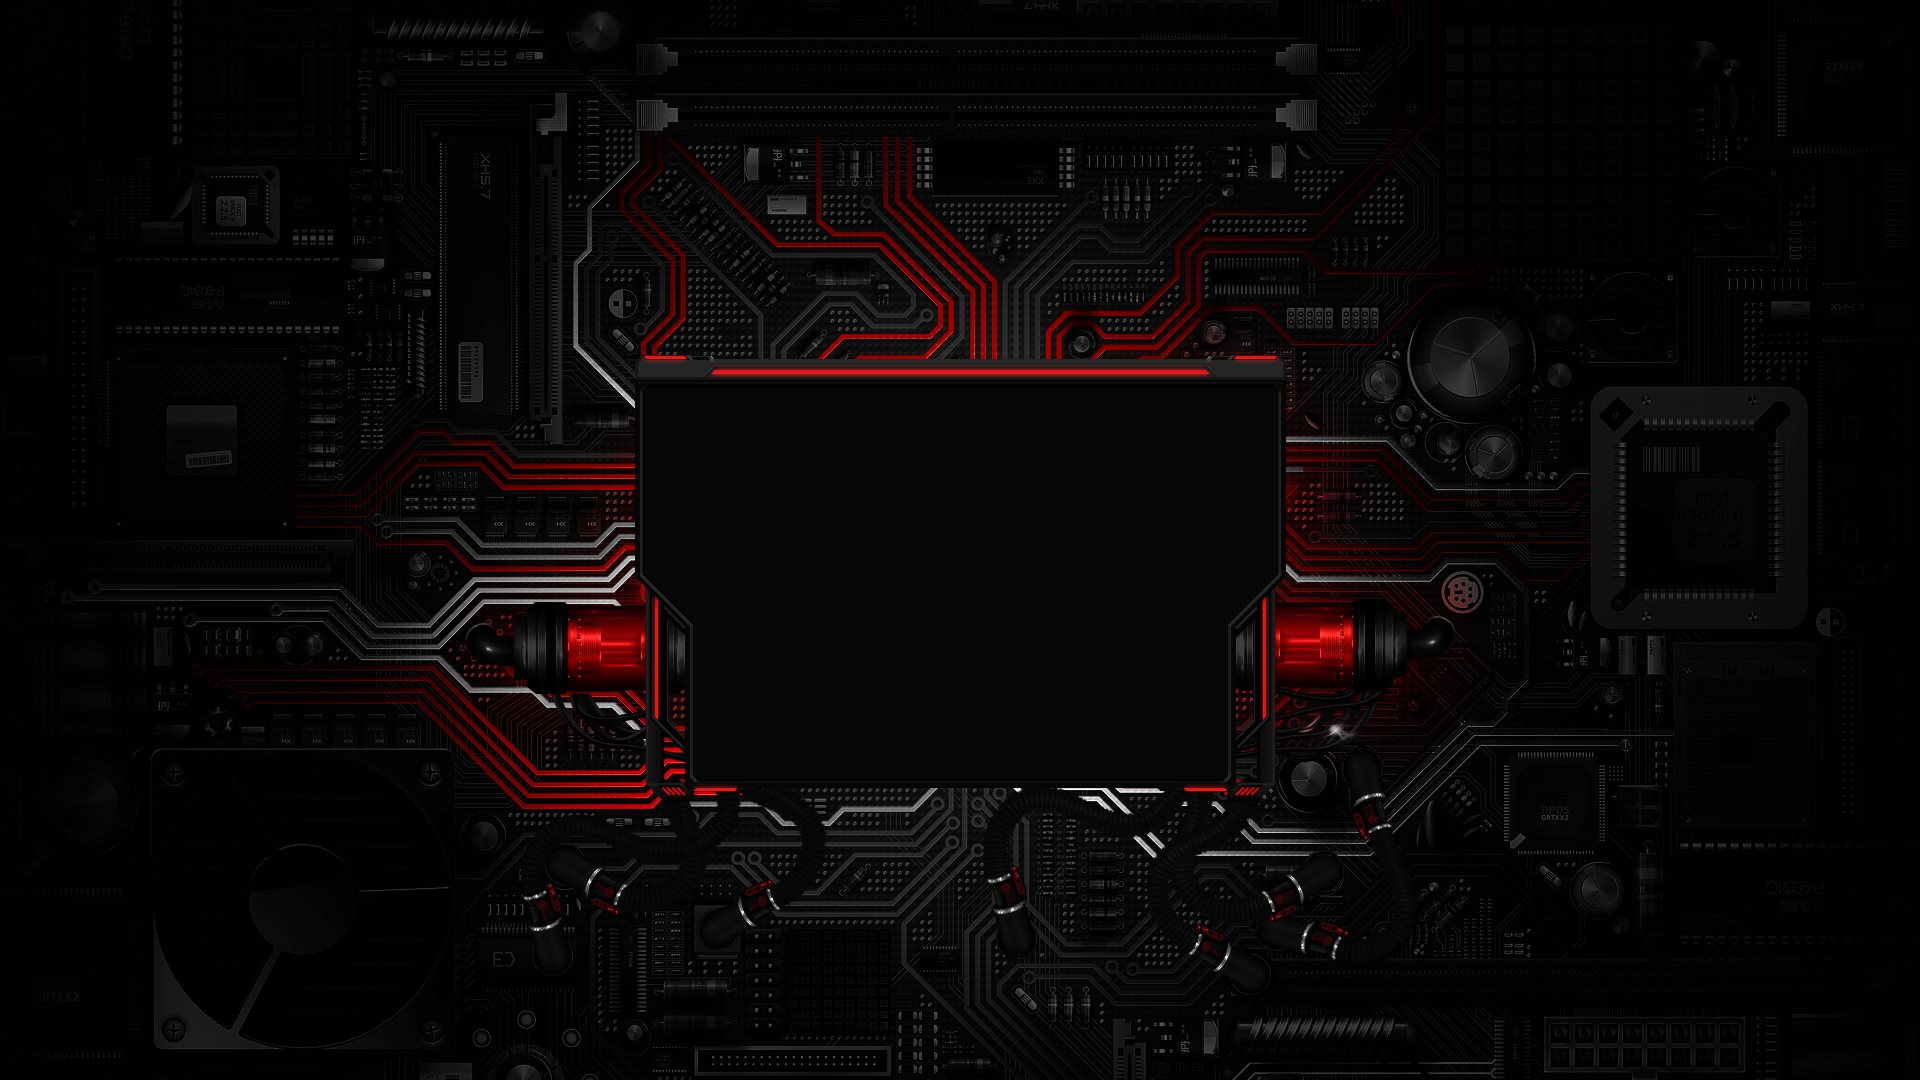 45 Hi Tech Wallpapers For Desktop and Laptops 1920x1080